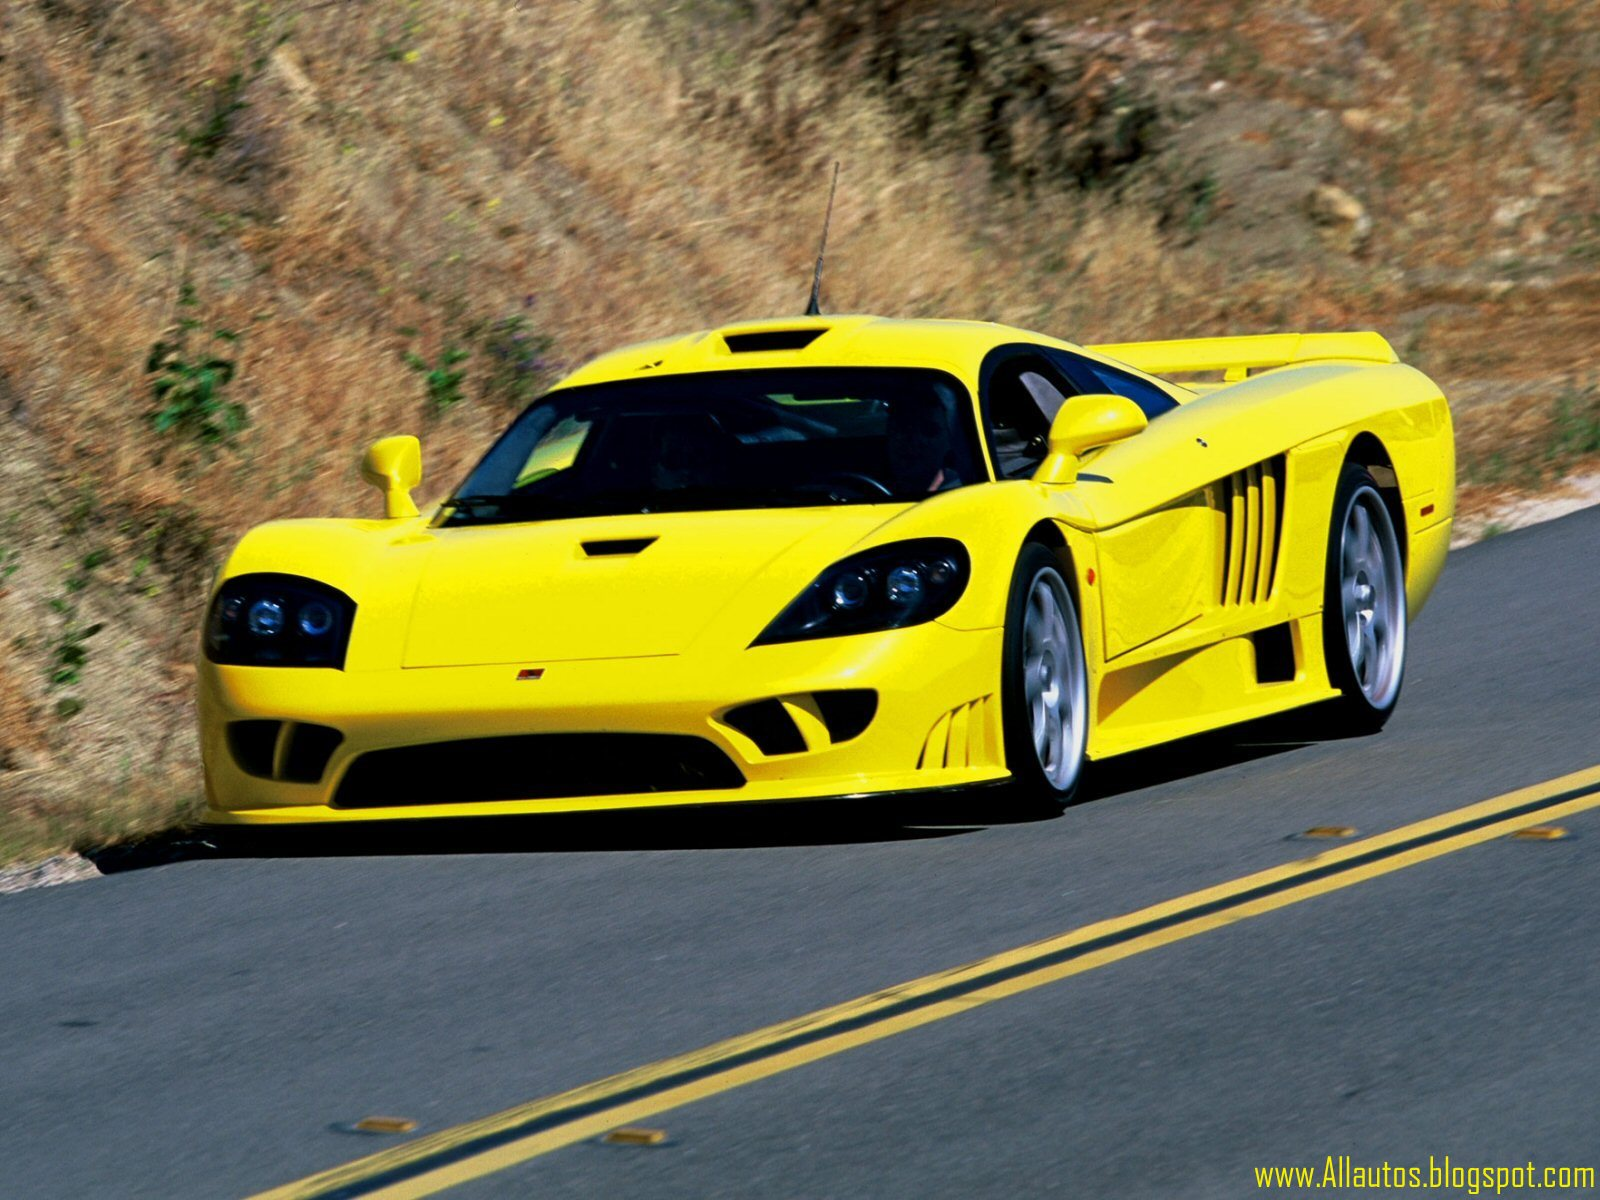 autos comparison between saleen s7 and saleen s7 tt. Black Bedroom Furniture Sets. Home Design Ideas